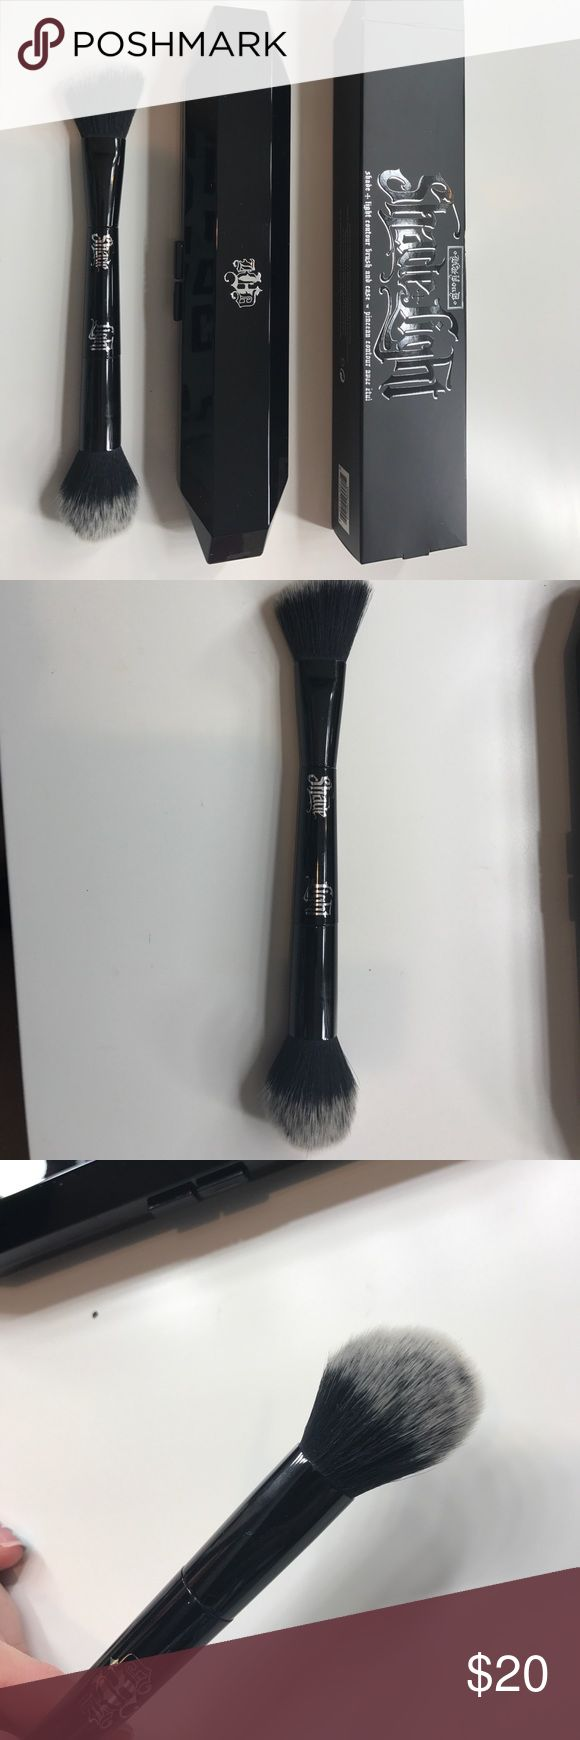 Kat Von D Shade &a Light Contouring brush Used for awhile but stopped getting use. It is deep cleaned with alcohol and the box is included. Kat Von D Makeup Brushes & Tools